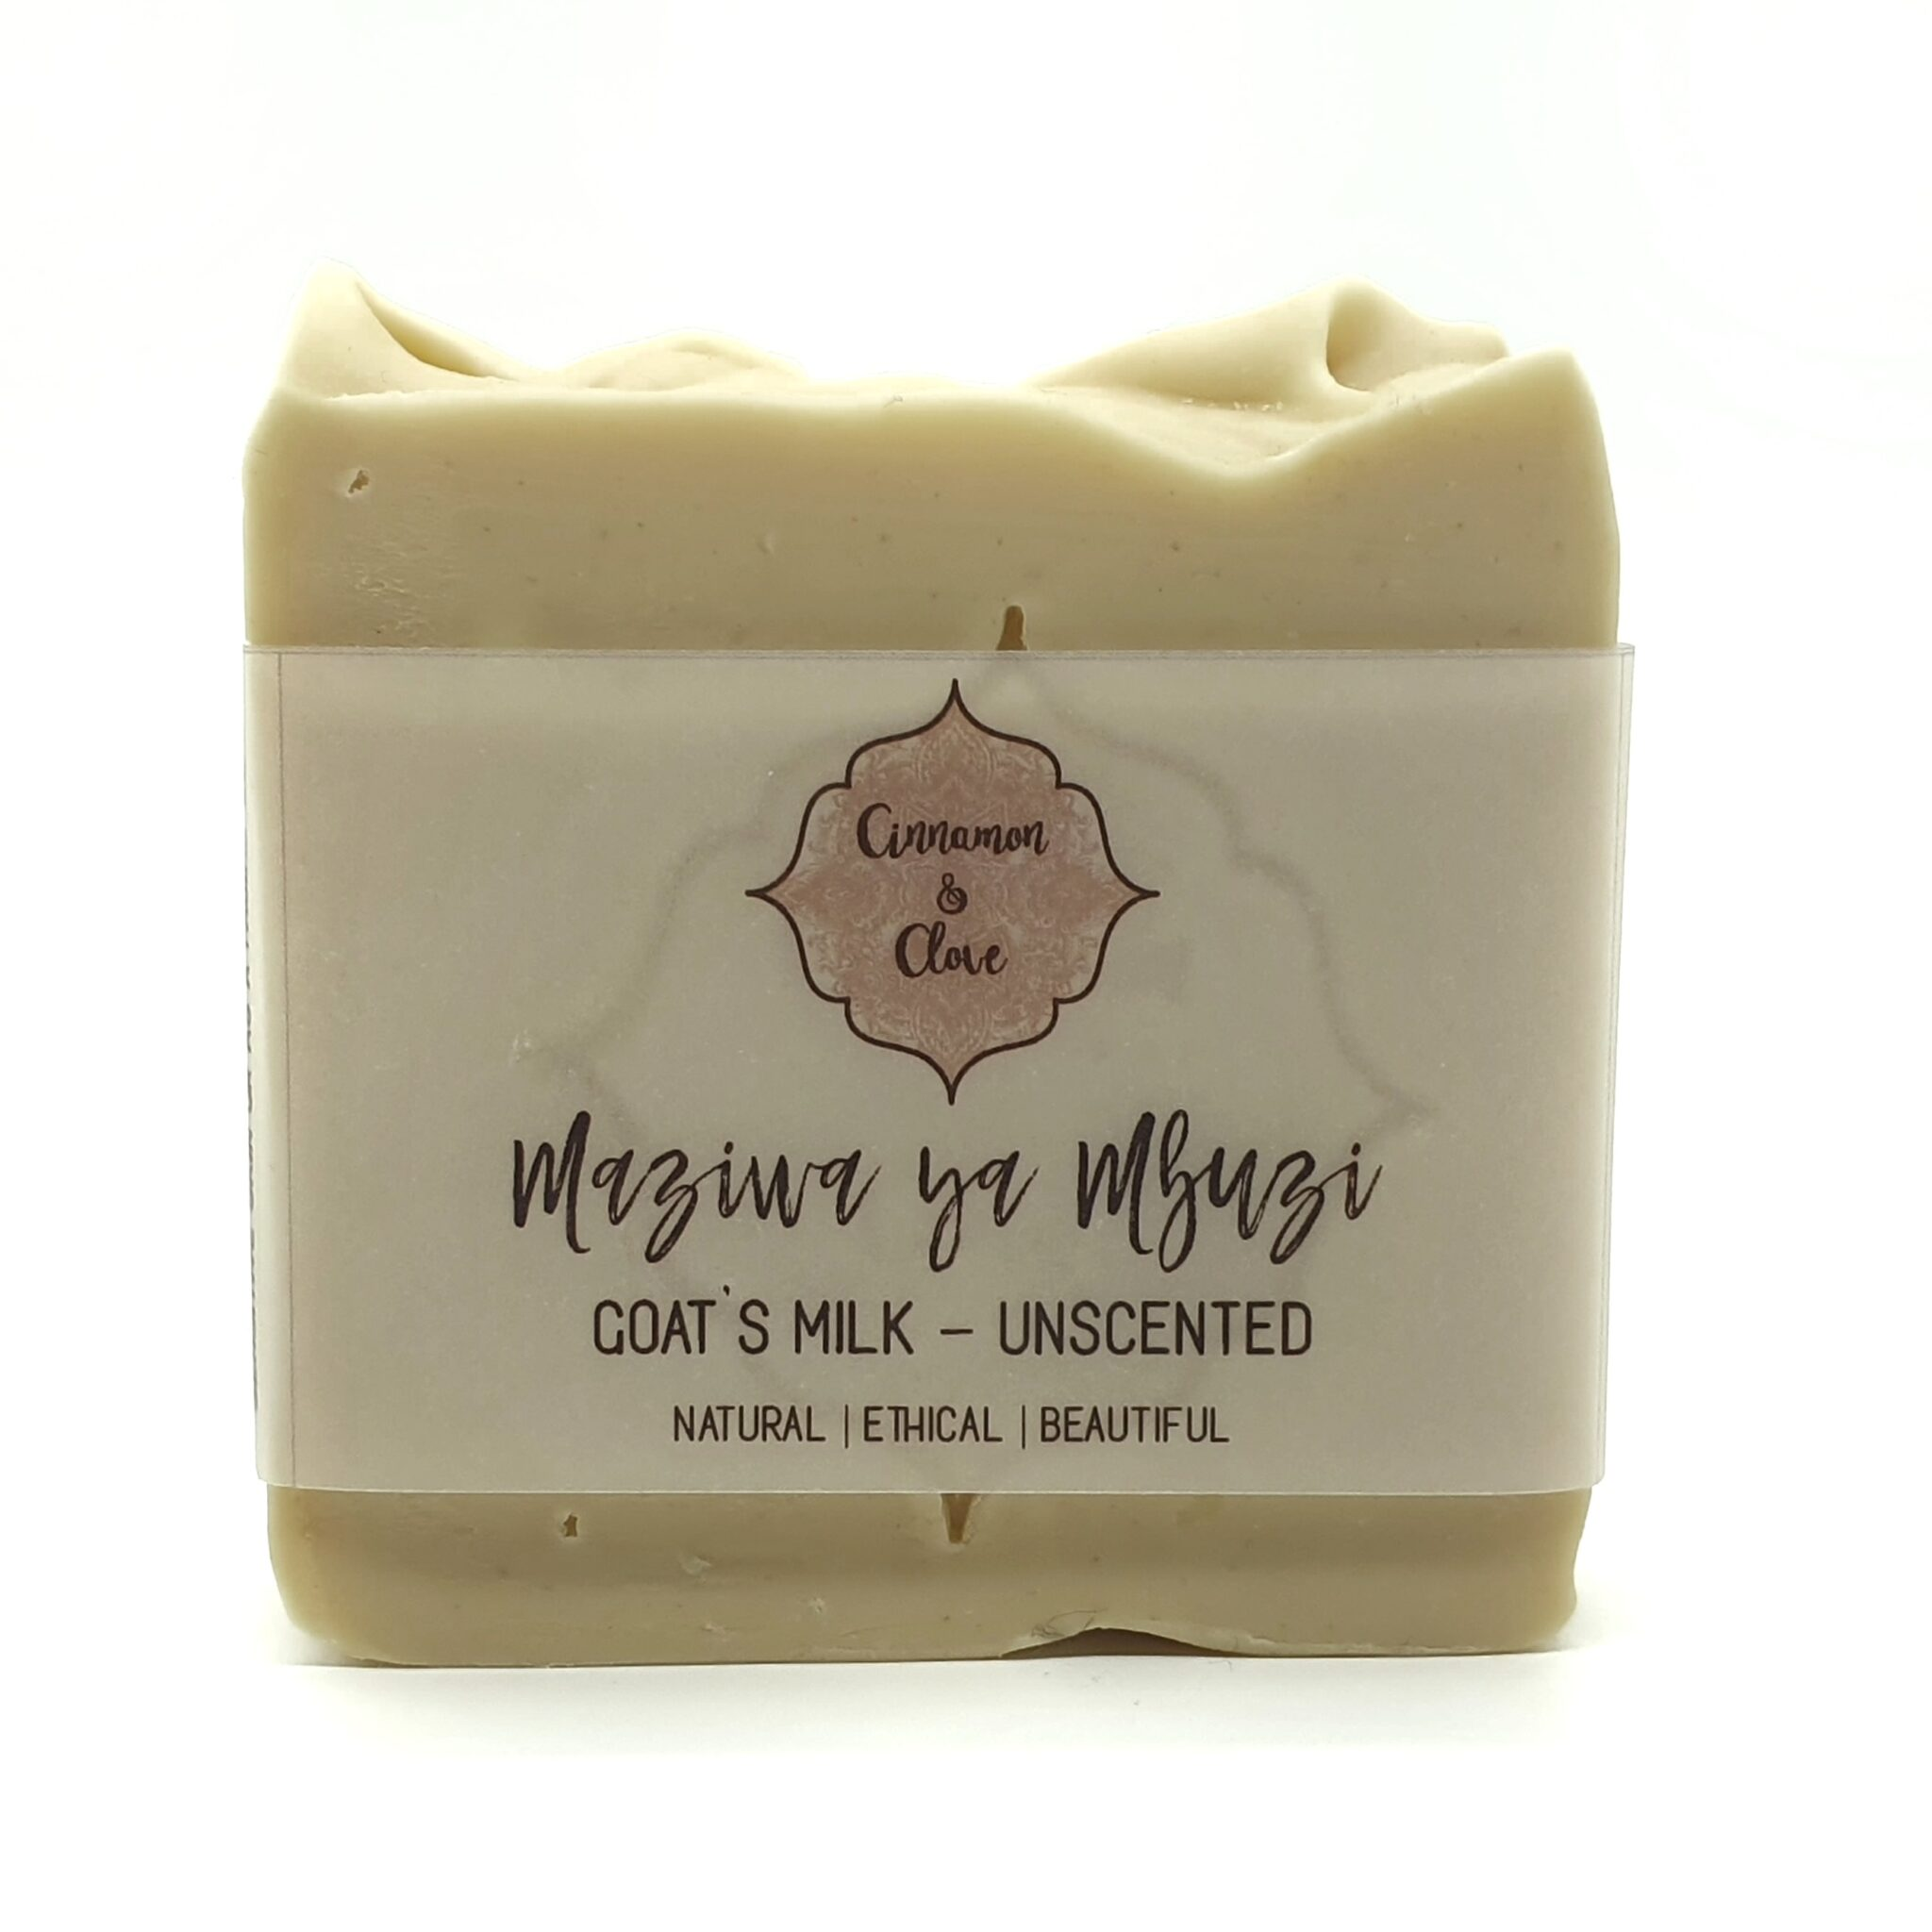 Maziwa Ya Mbuzi – Handcrafted All Natural Artisan Soap With Goat's Milk By Cinnamon And Clove (Prahran)